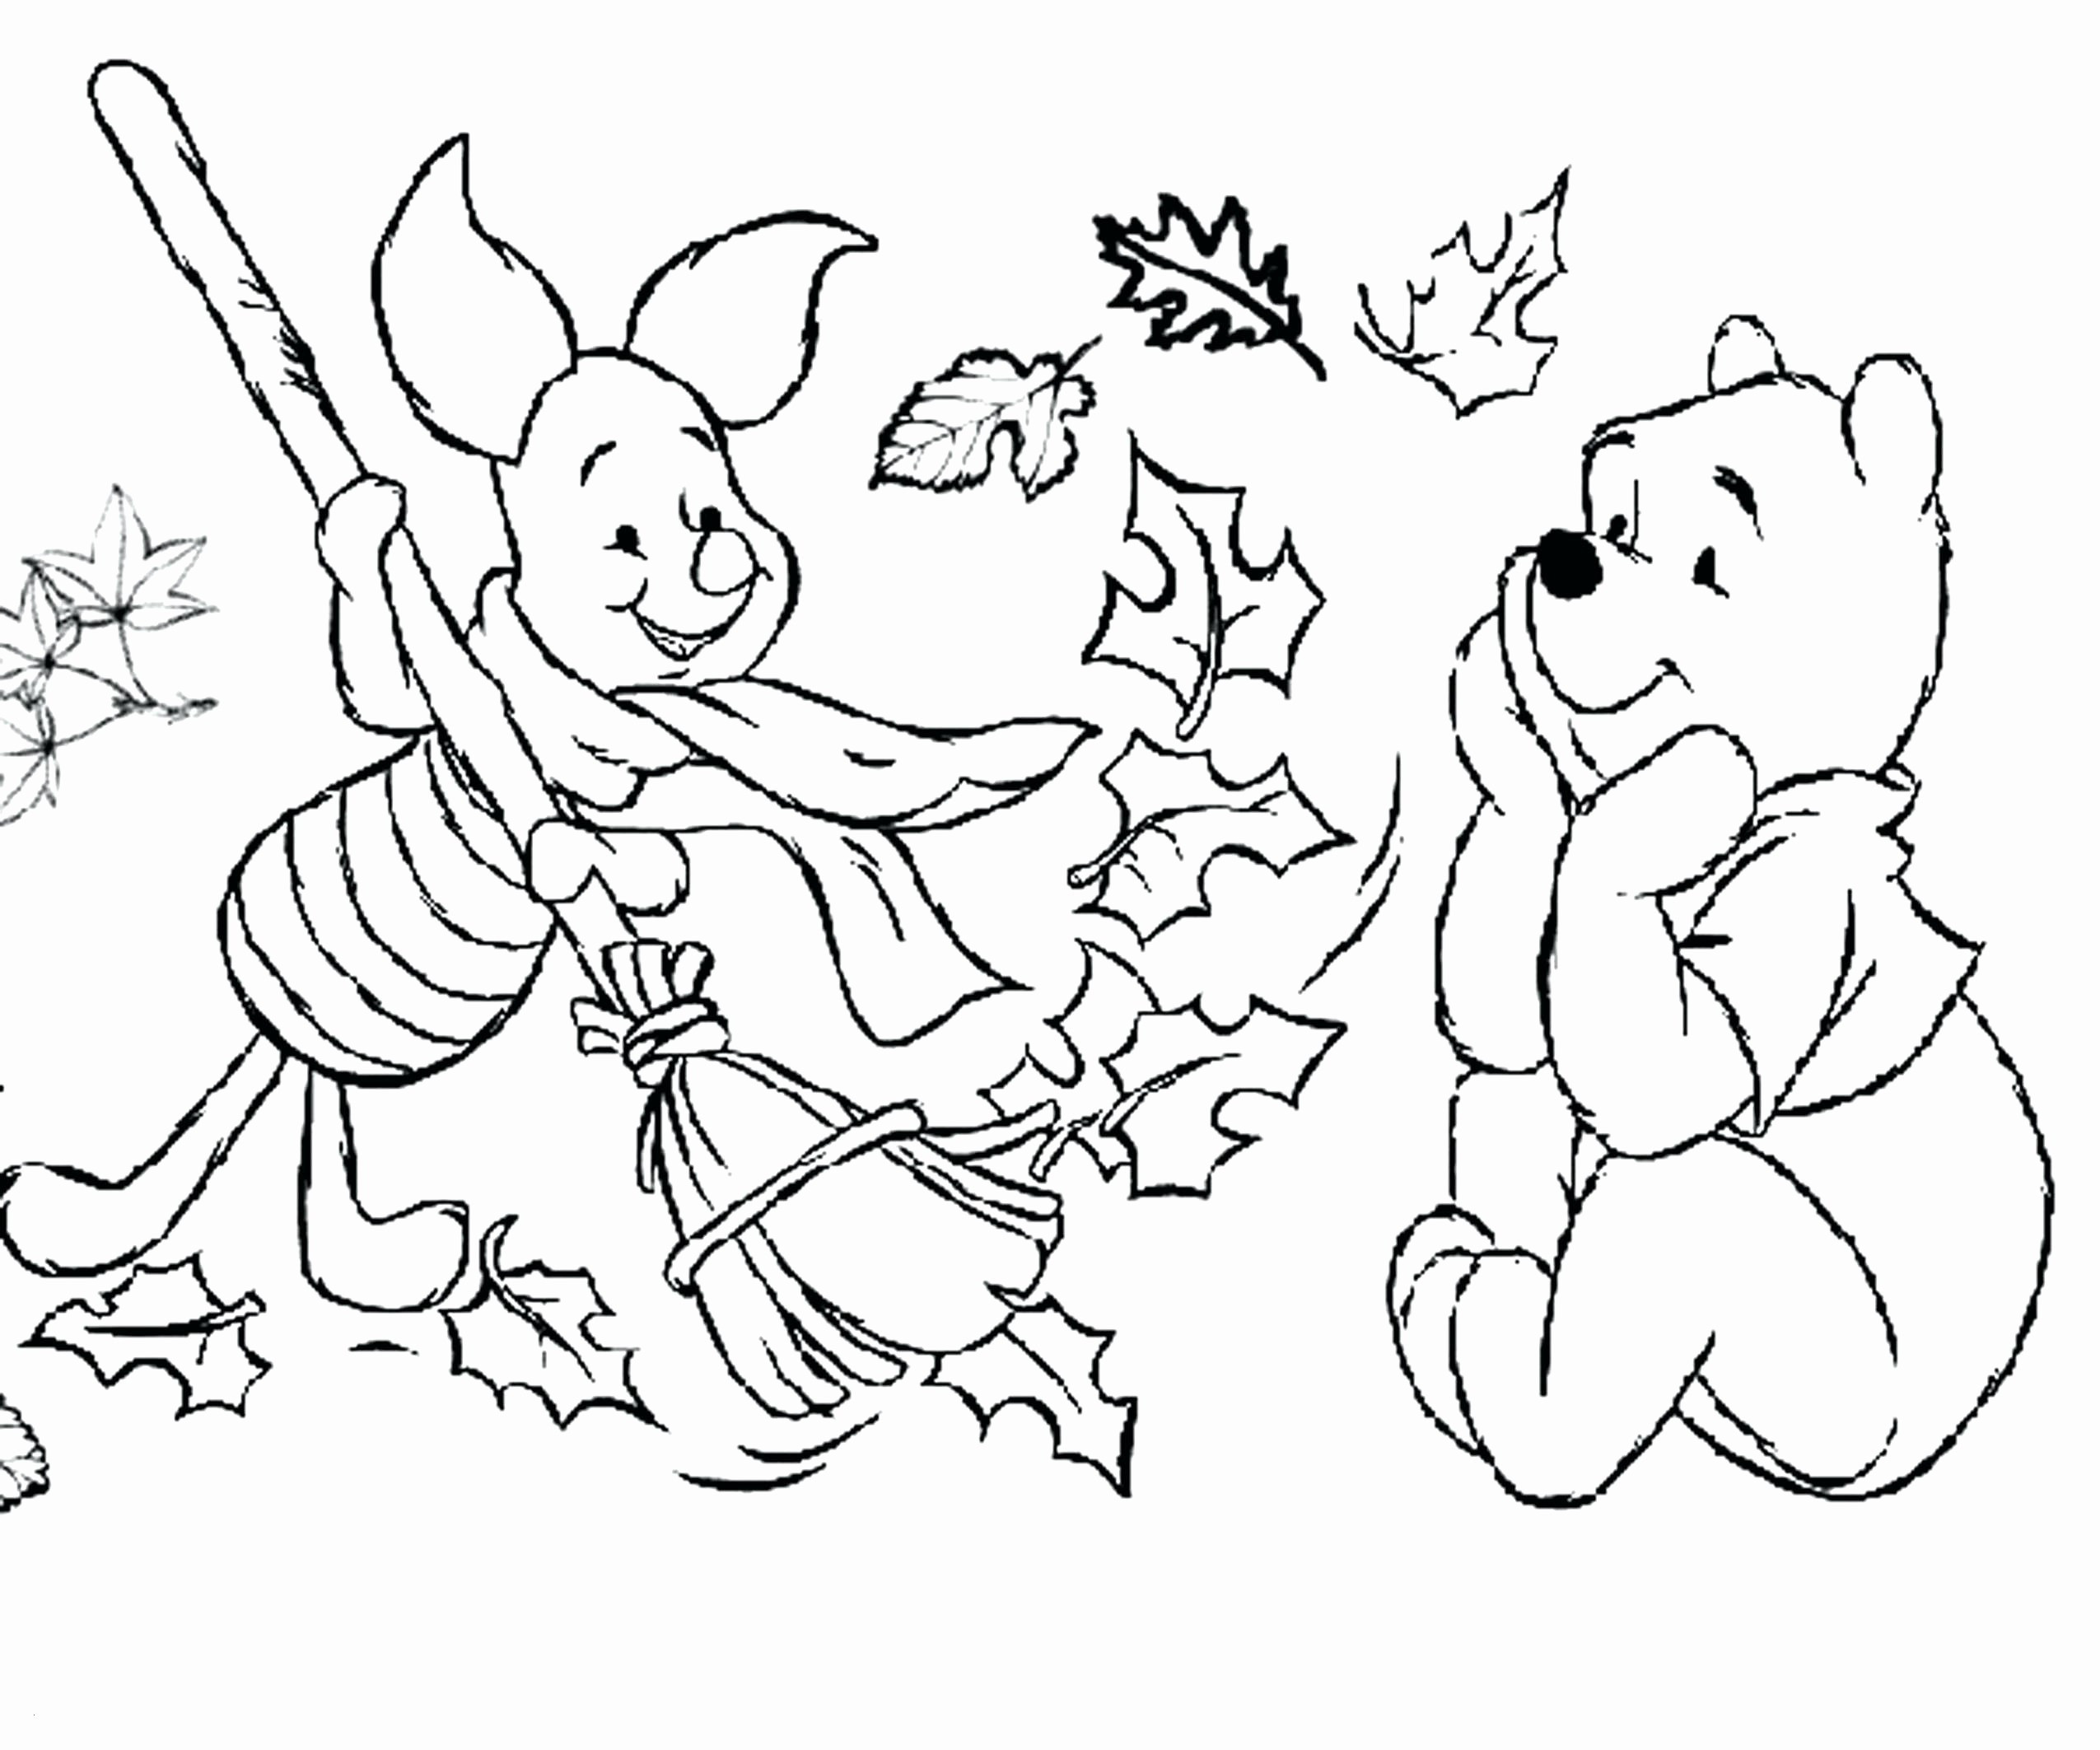 Ausmalbild Mia and Me Neu Wilder Westen Ausmalbilder Luxus Mia and Me Coloring Pages Fresh Bild